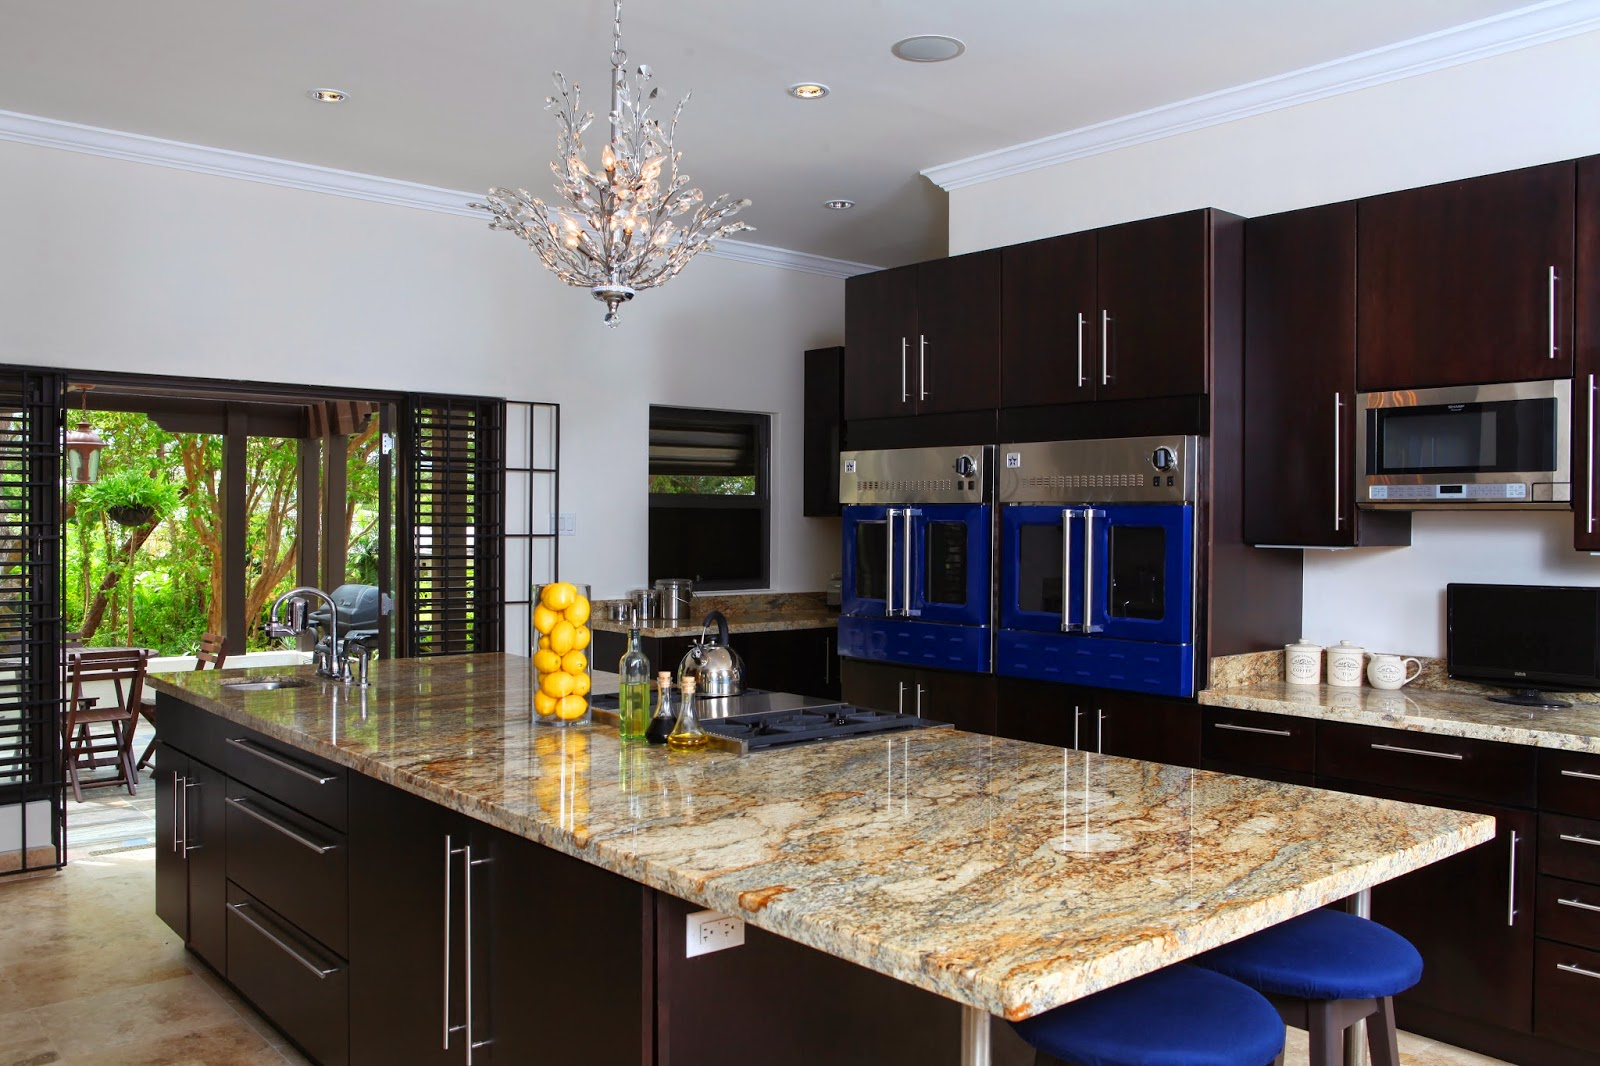 Countertops, Kitchen Cabinetry And Hardware By Cornerstone Builders Direct.